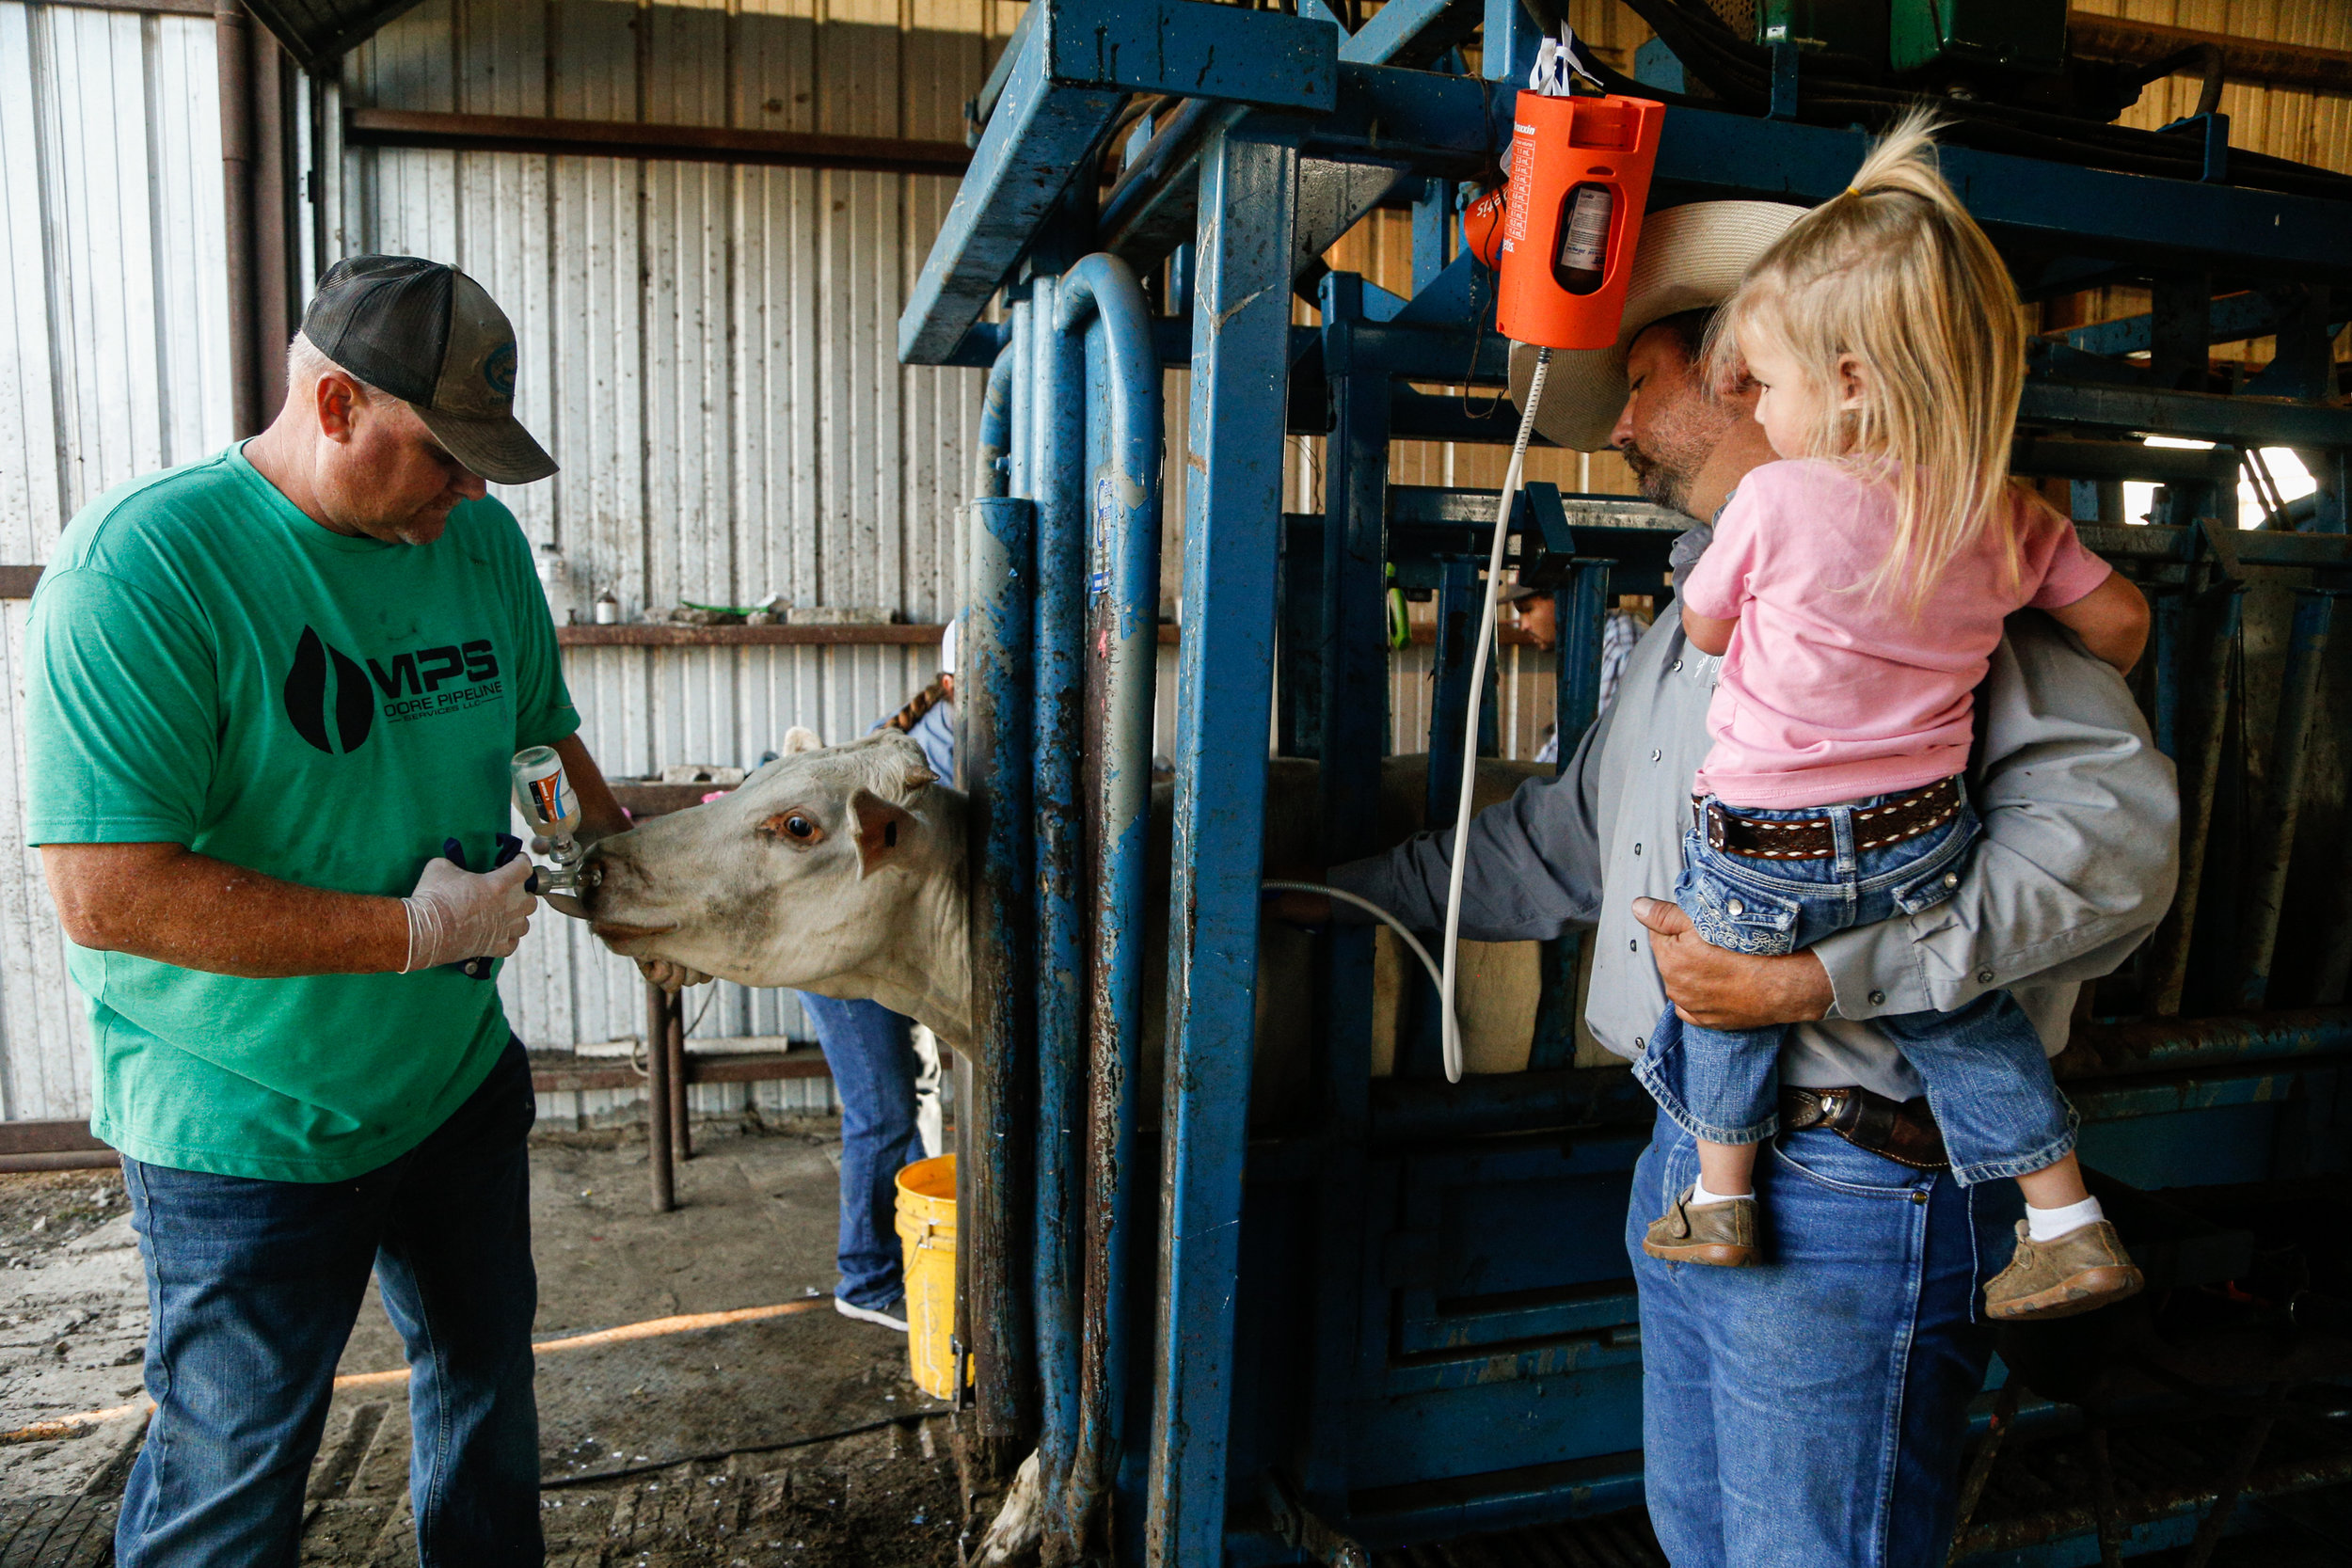 Shane and Jenna Stierwalt process a new shipment of cattle at Stierwalt Ranch in Burbank on July 27, 2019.